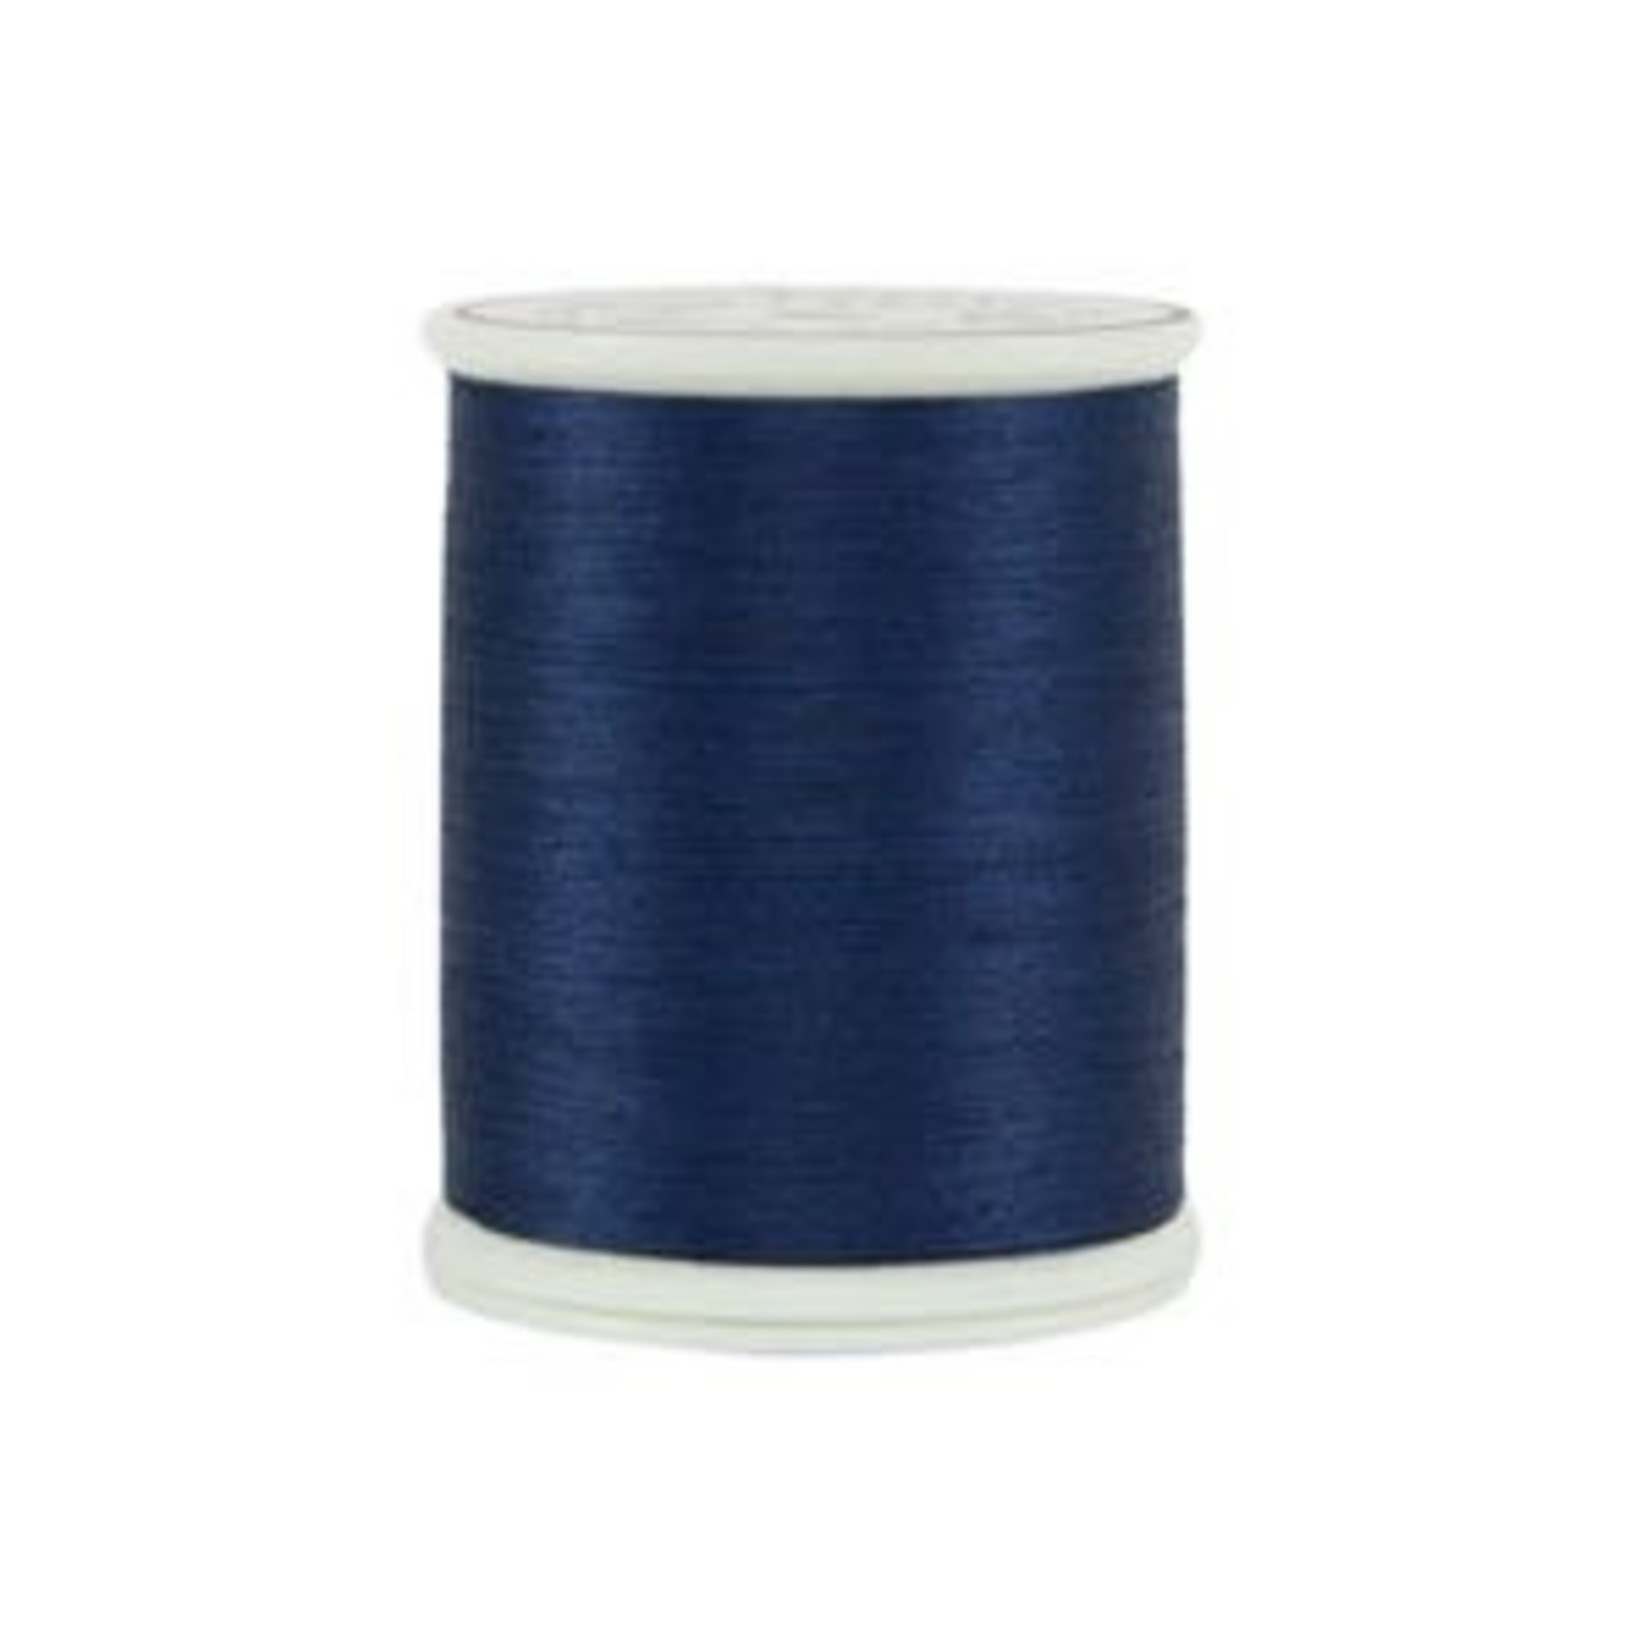 Superior Threads King Tut - #40 - 457 m - 1032 In the Navy